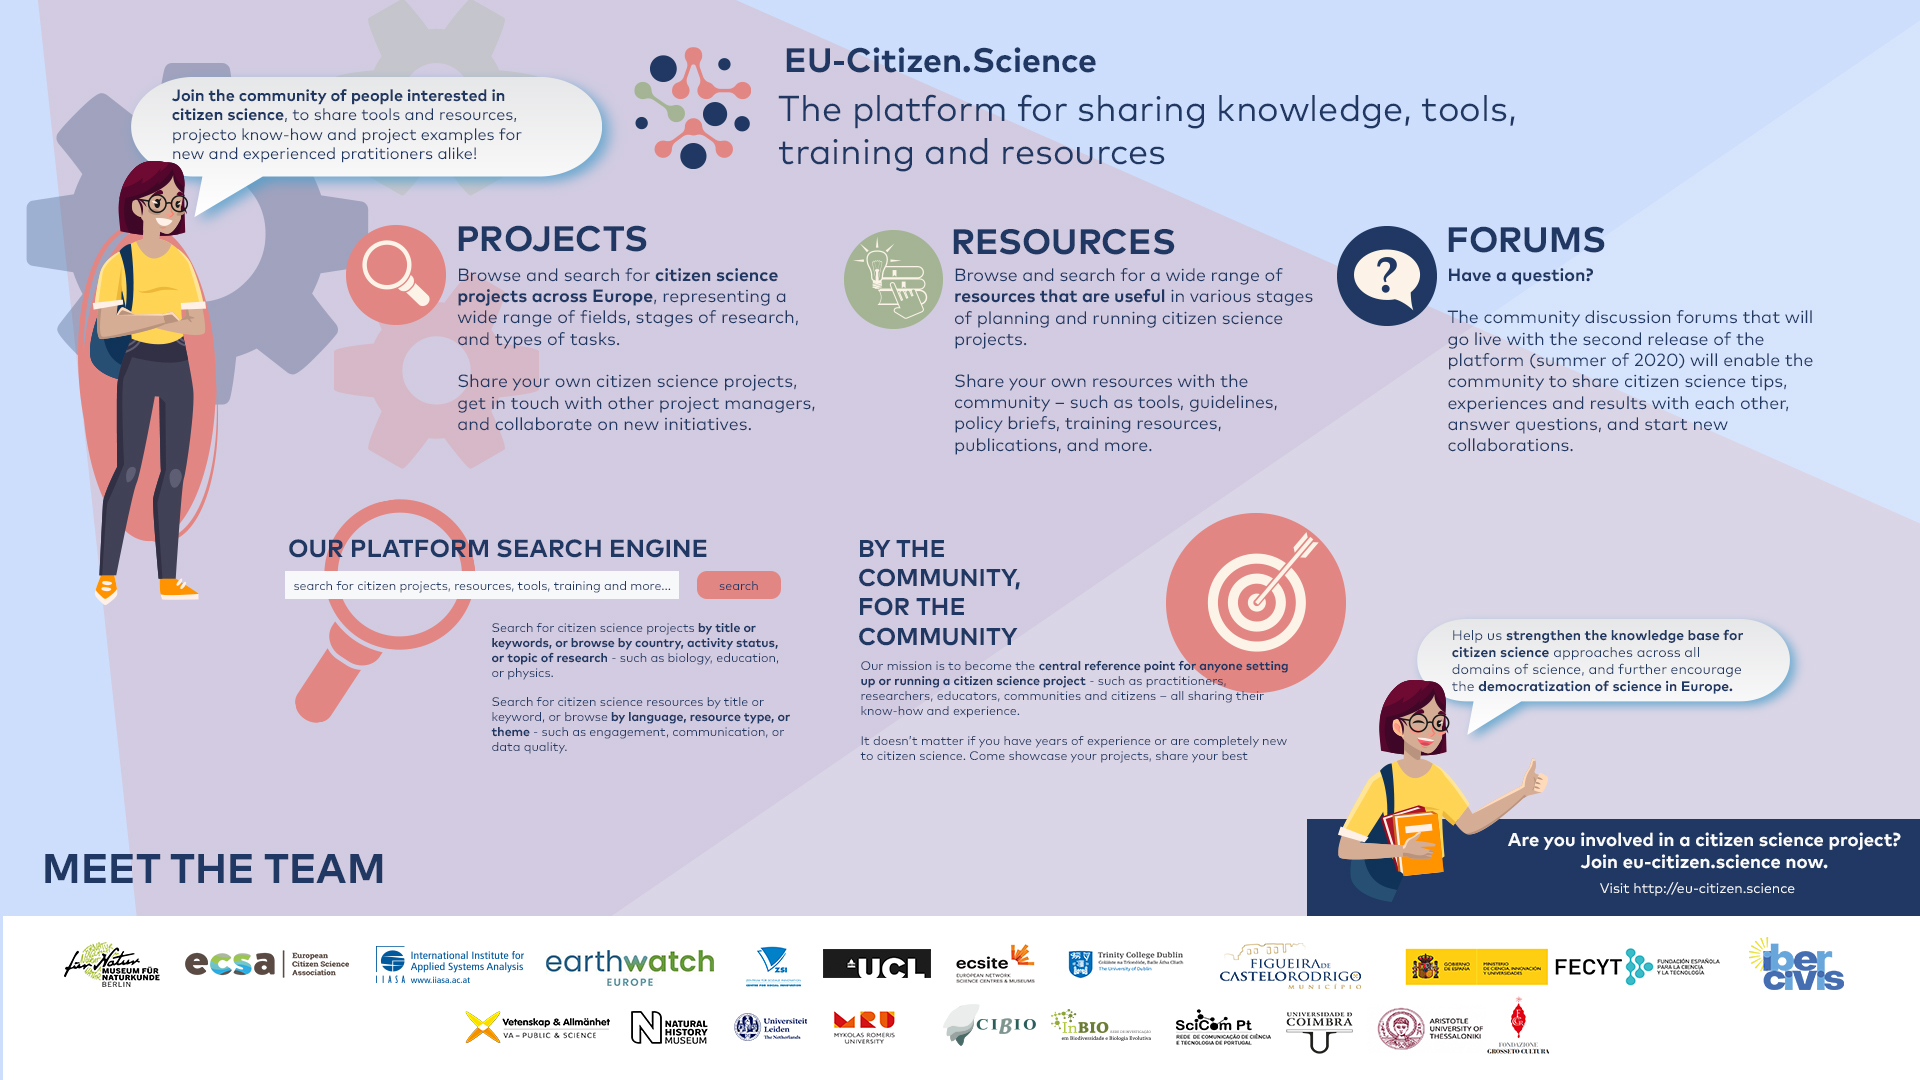 EU-Citizen.Science, The platform for sharing knowledge, tools training and resources